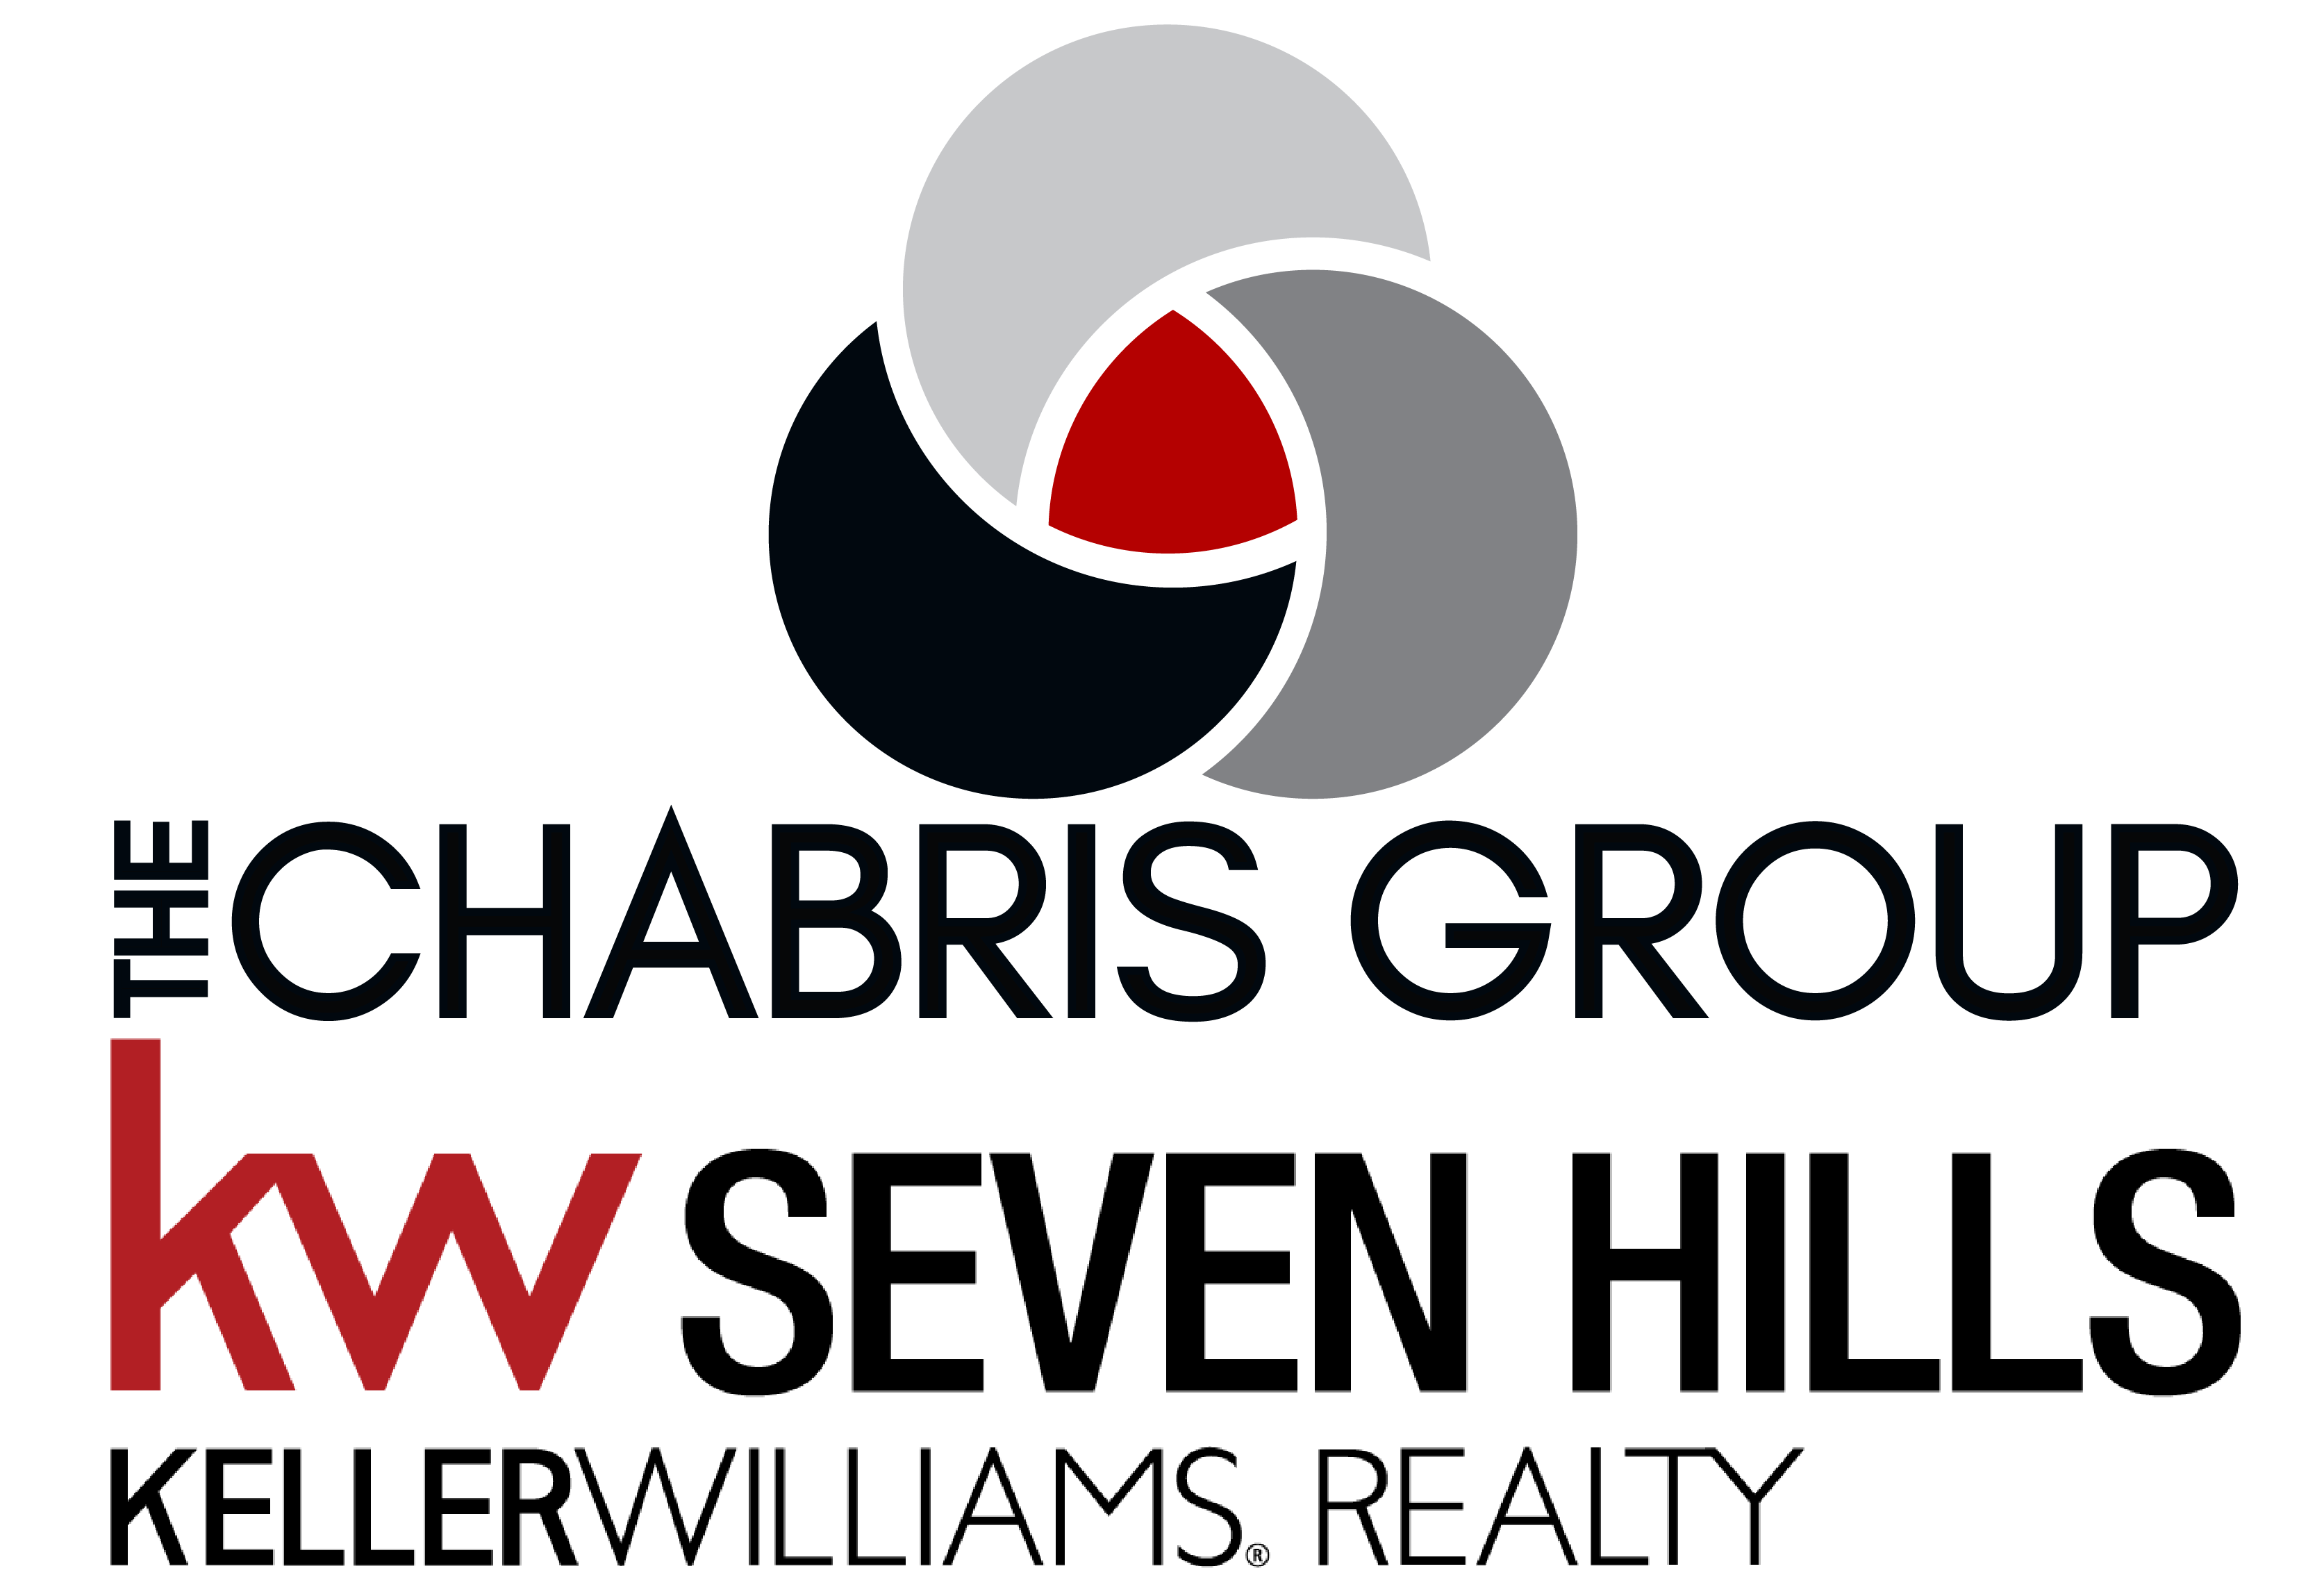 The Chabris Group logo